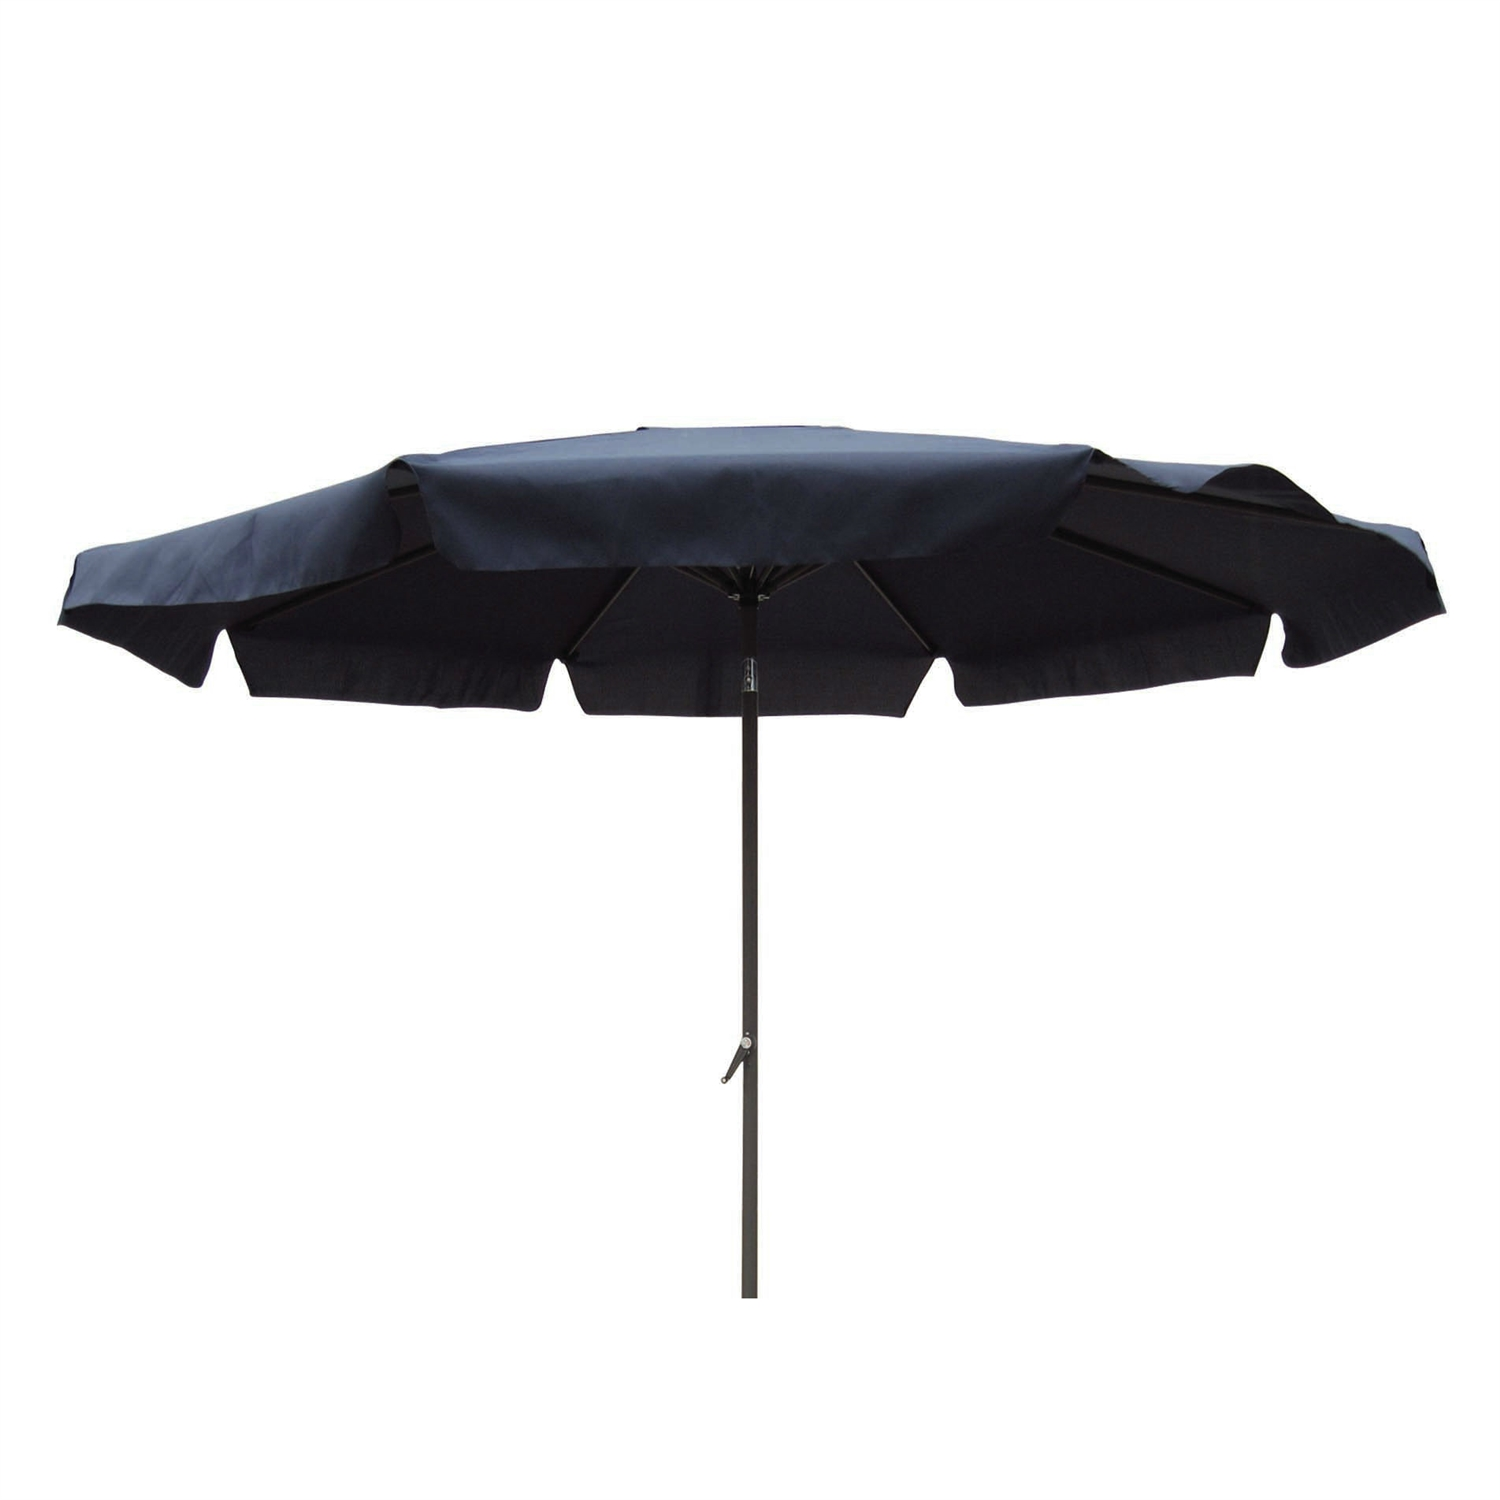 Black Polyester 8 Ft Patio Umbrella With Aluminum Pole And Crank Tilt